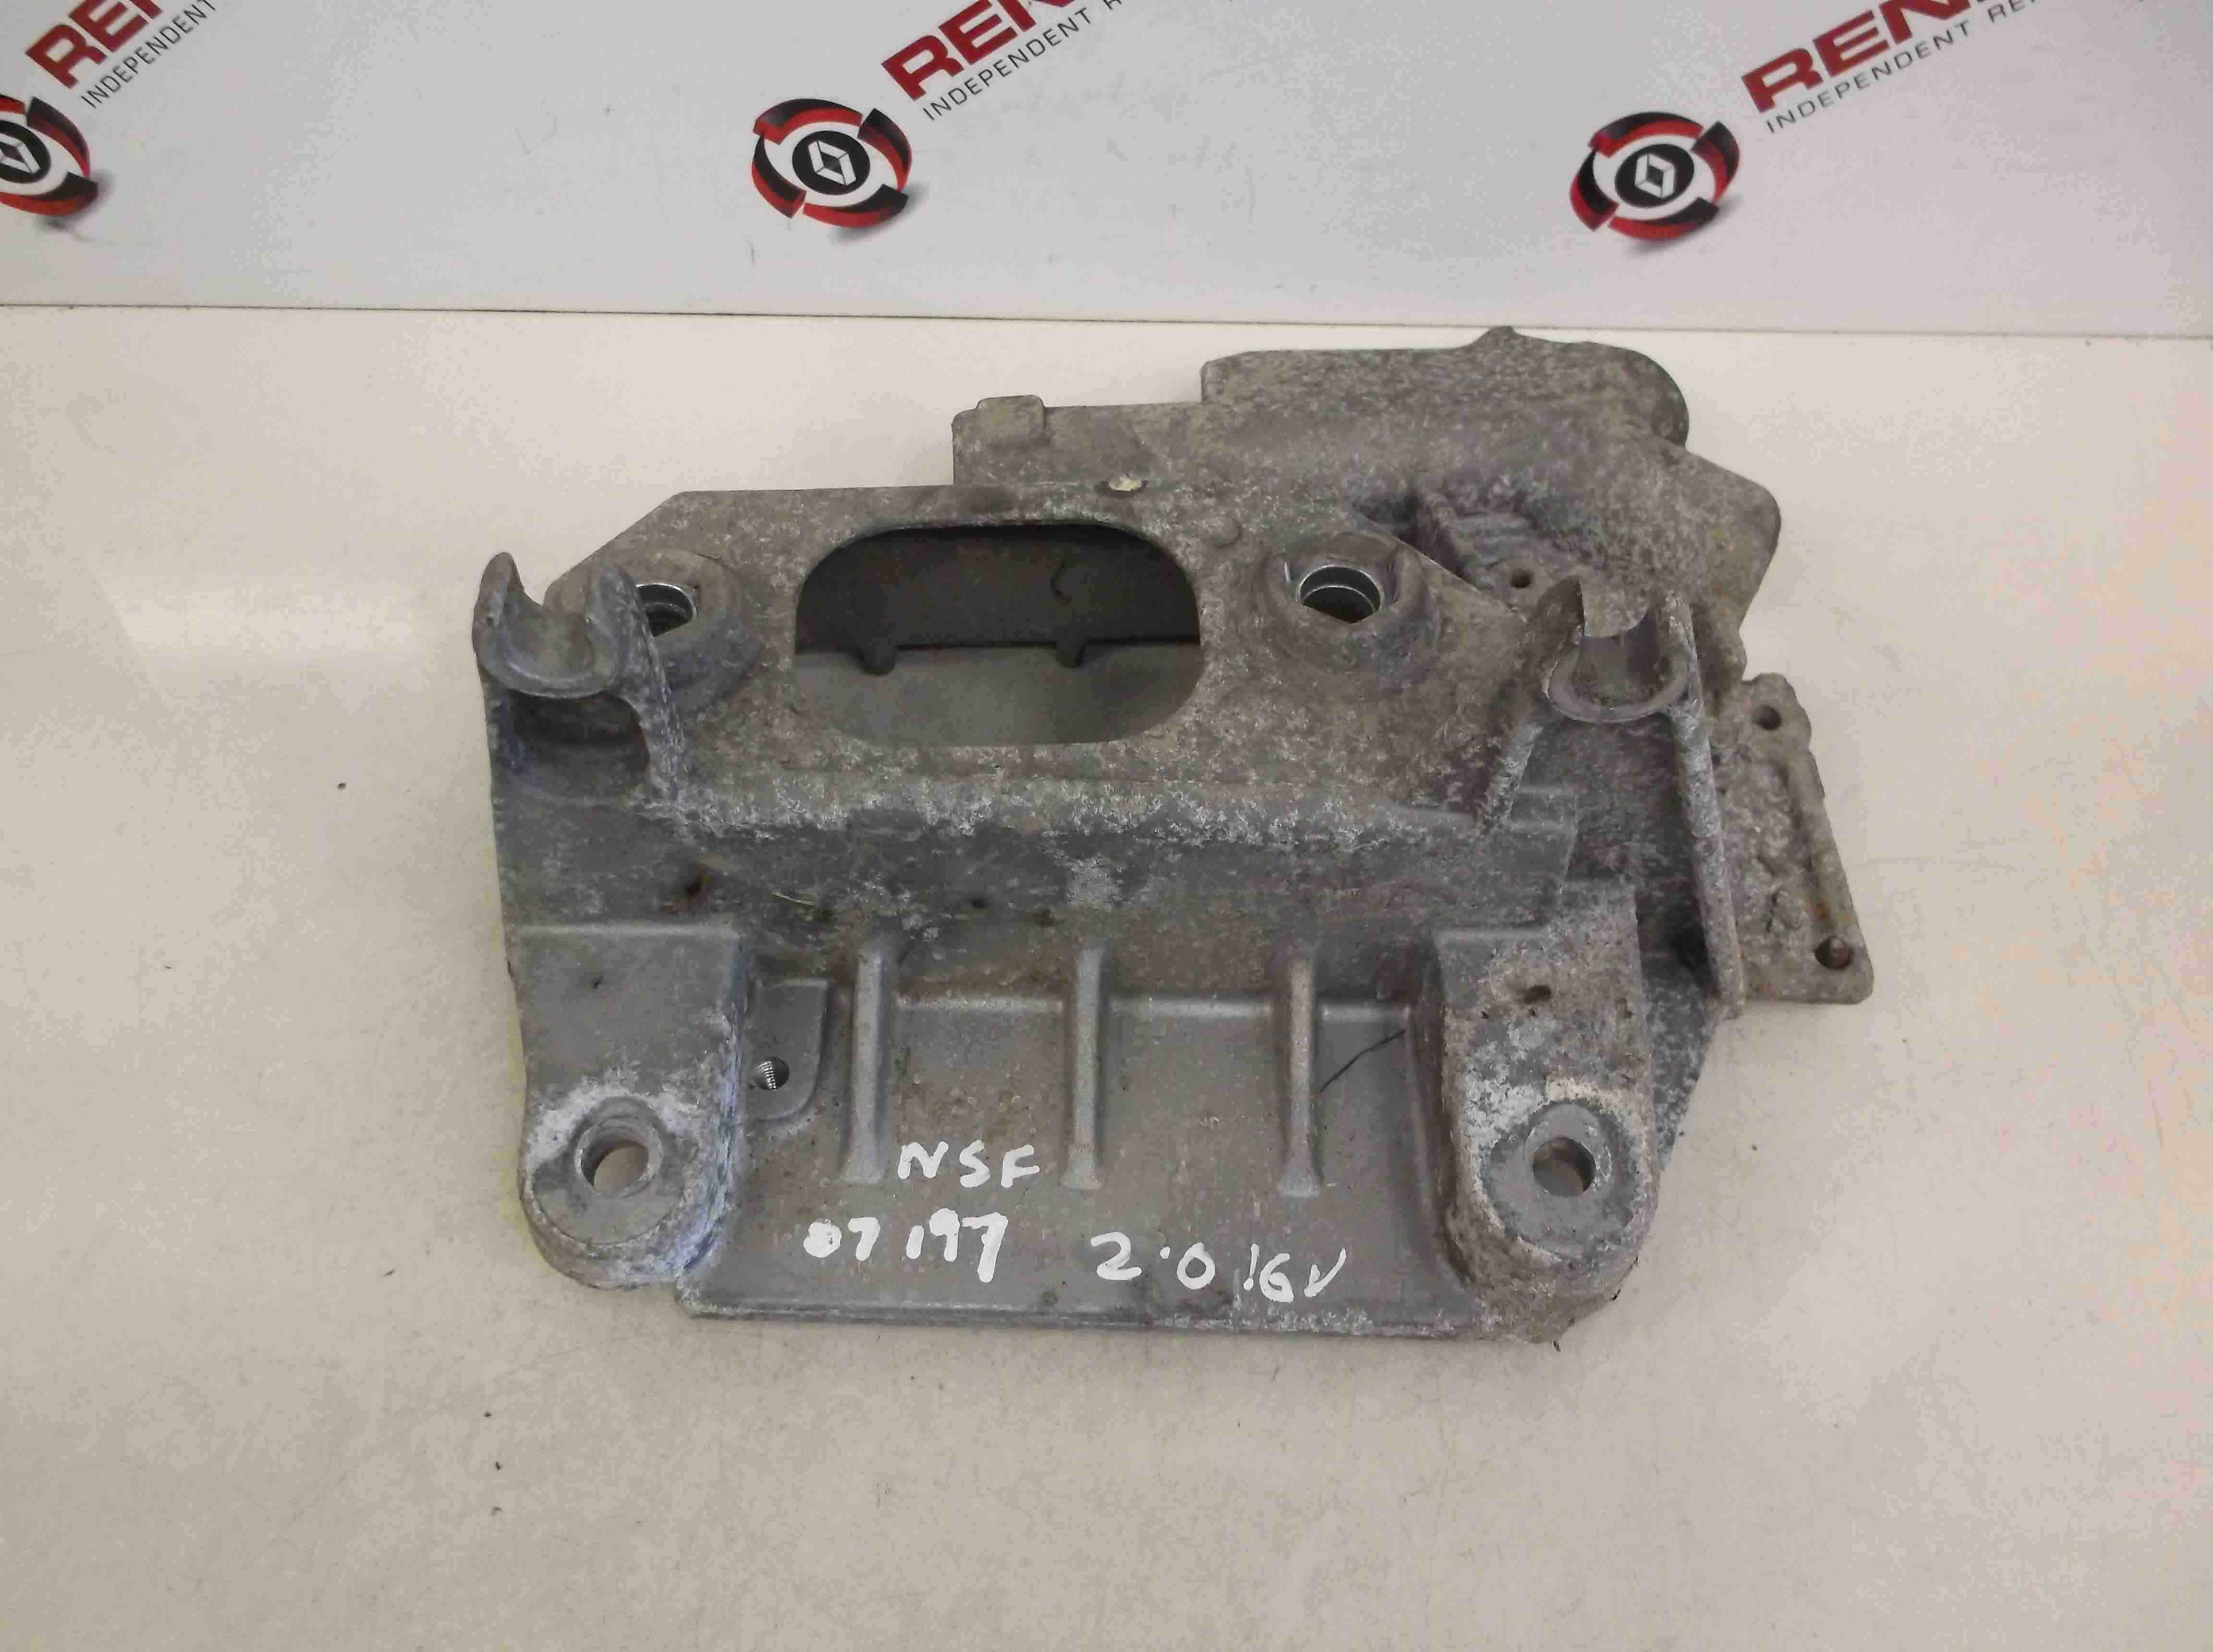 Renault Clio Sport 2005-2012 197 200 2.0 16v Gearbox Mount Battery Tray